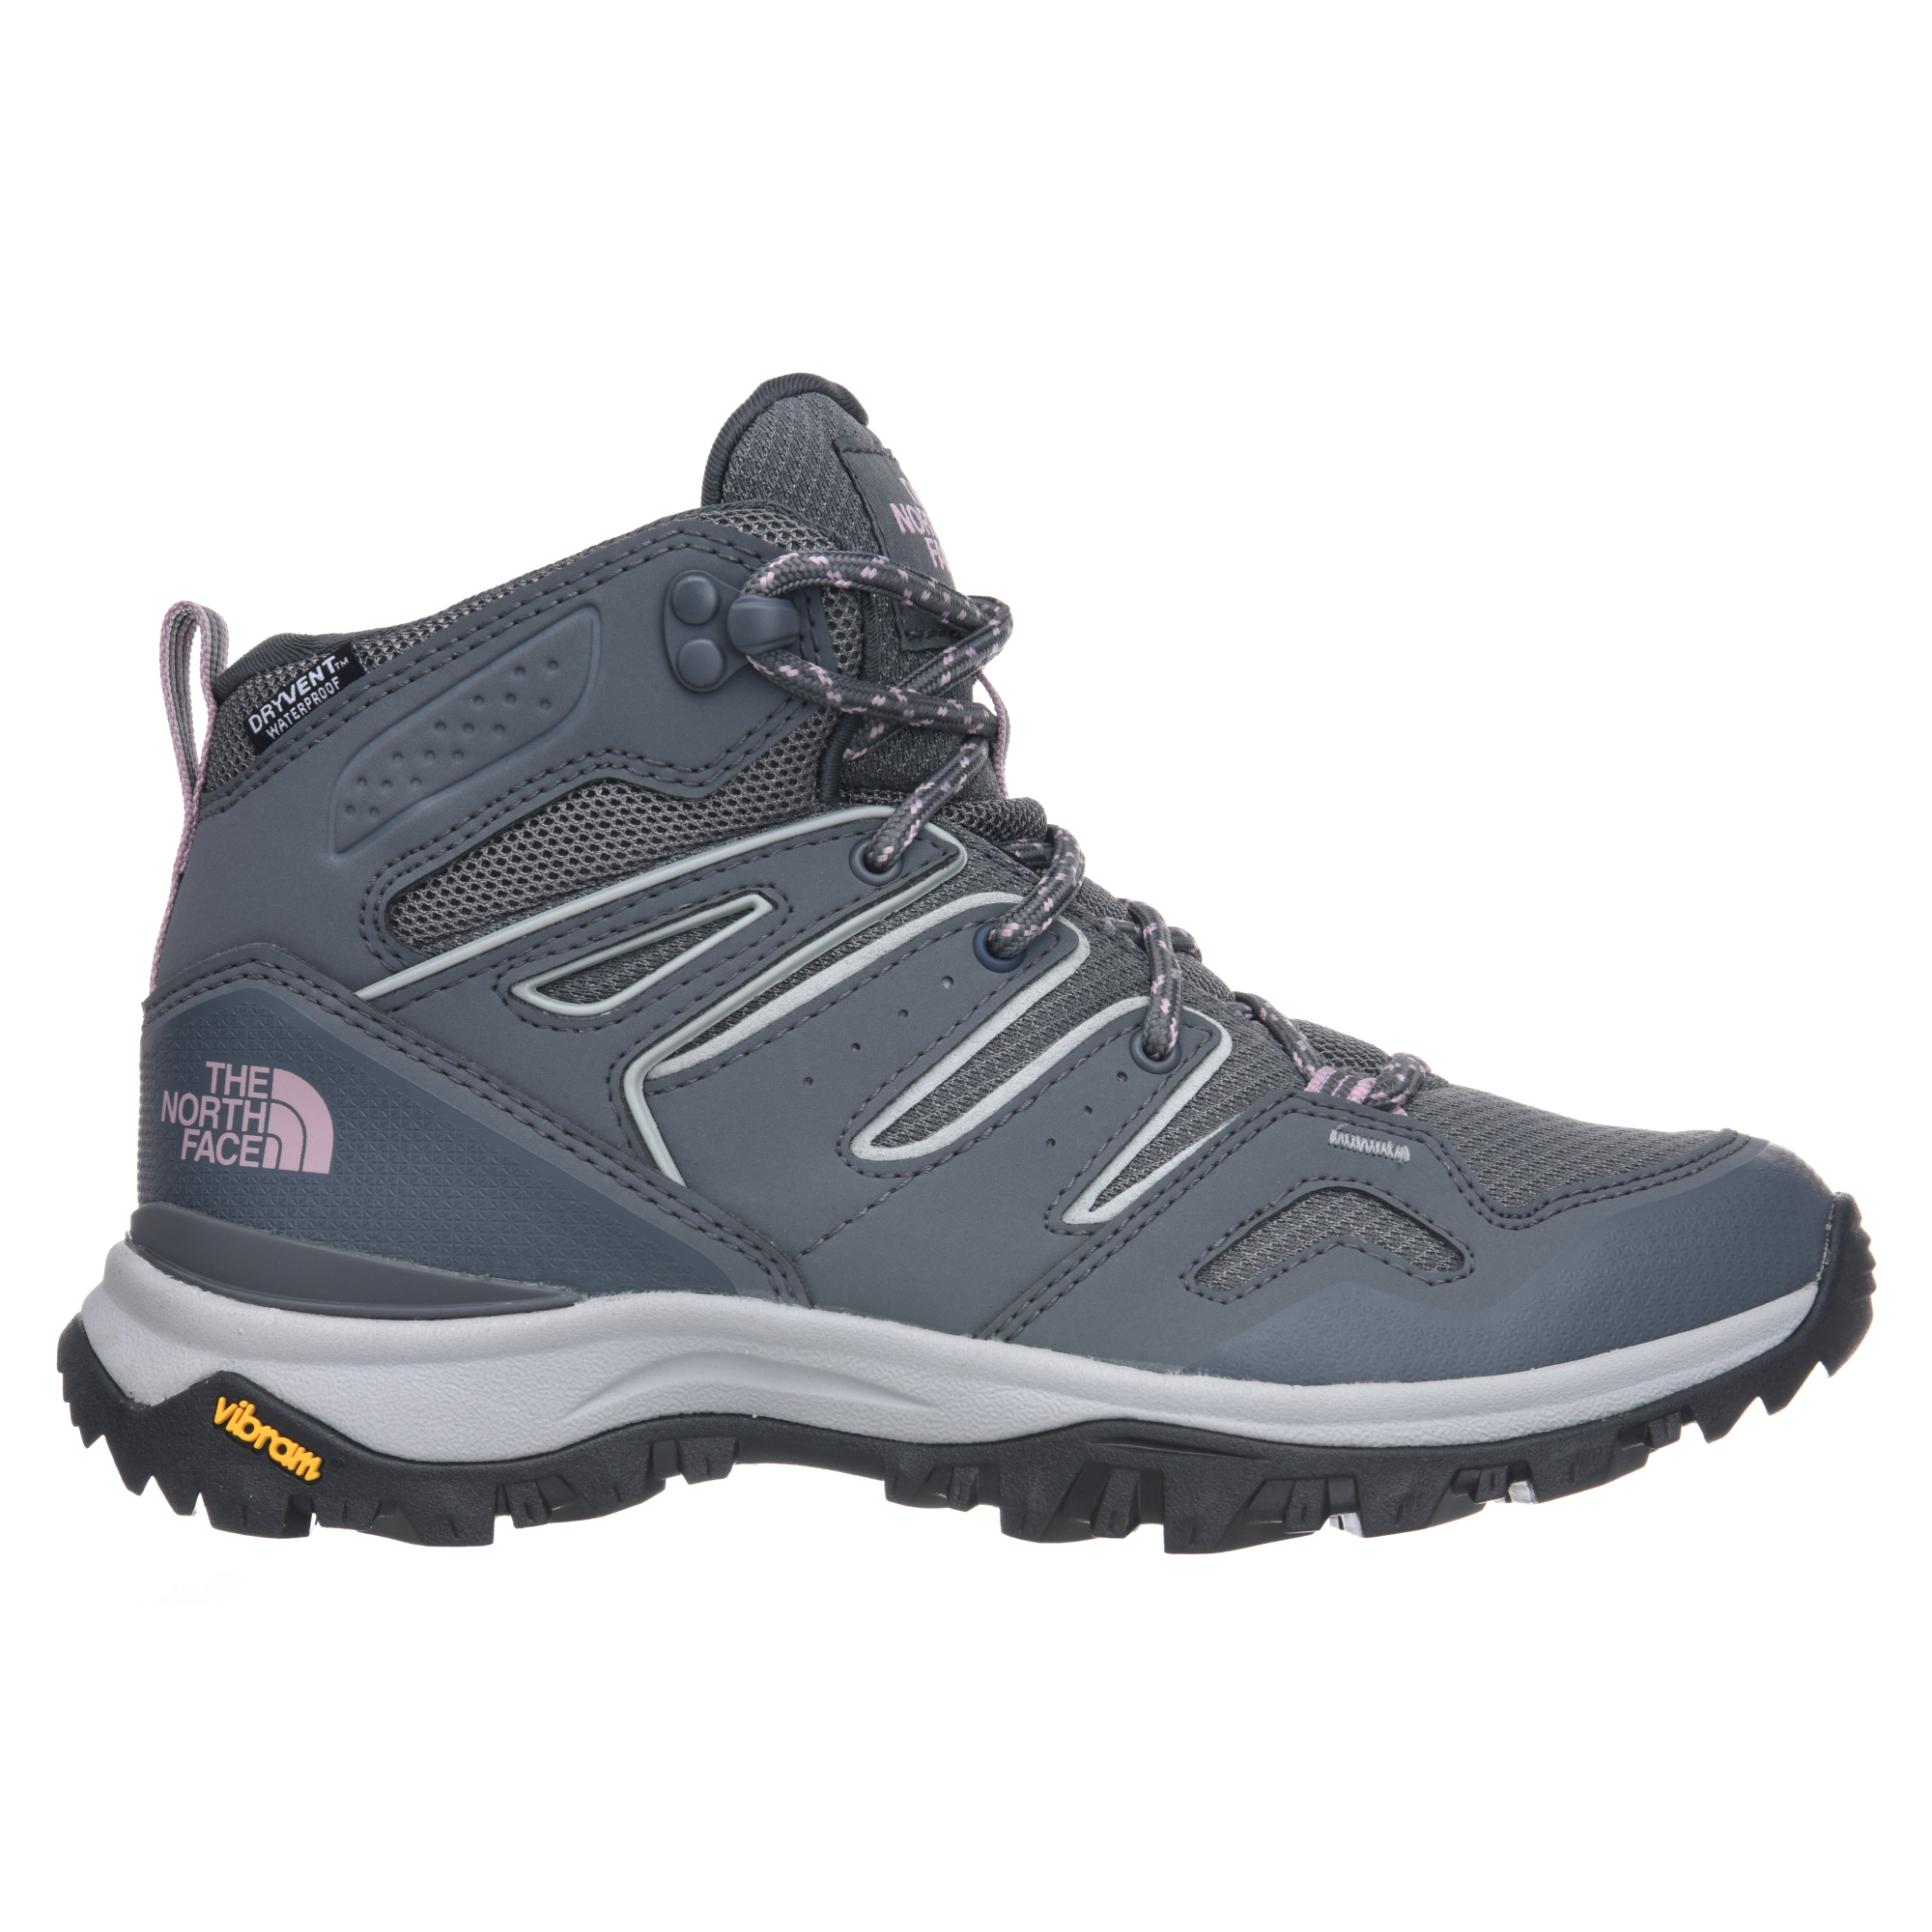 wiggle.com   The North Face Women's